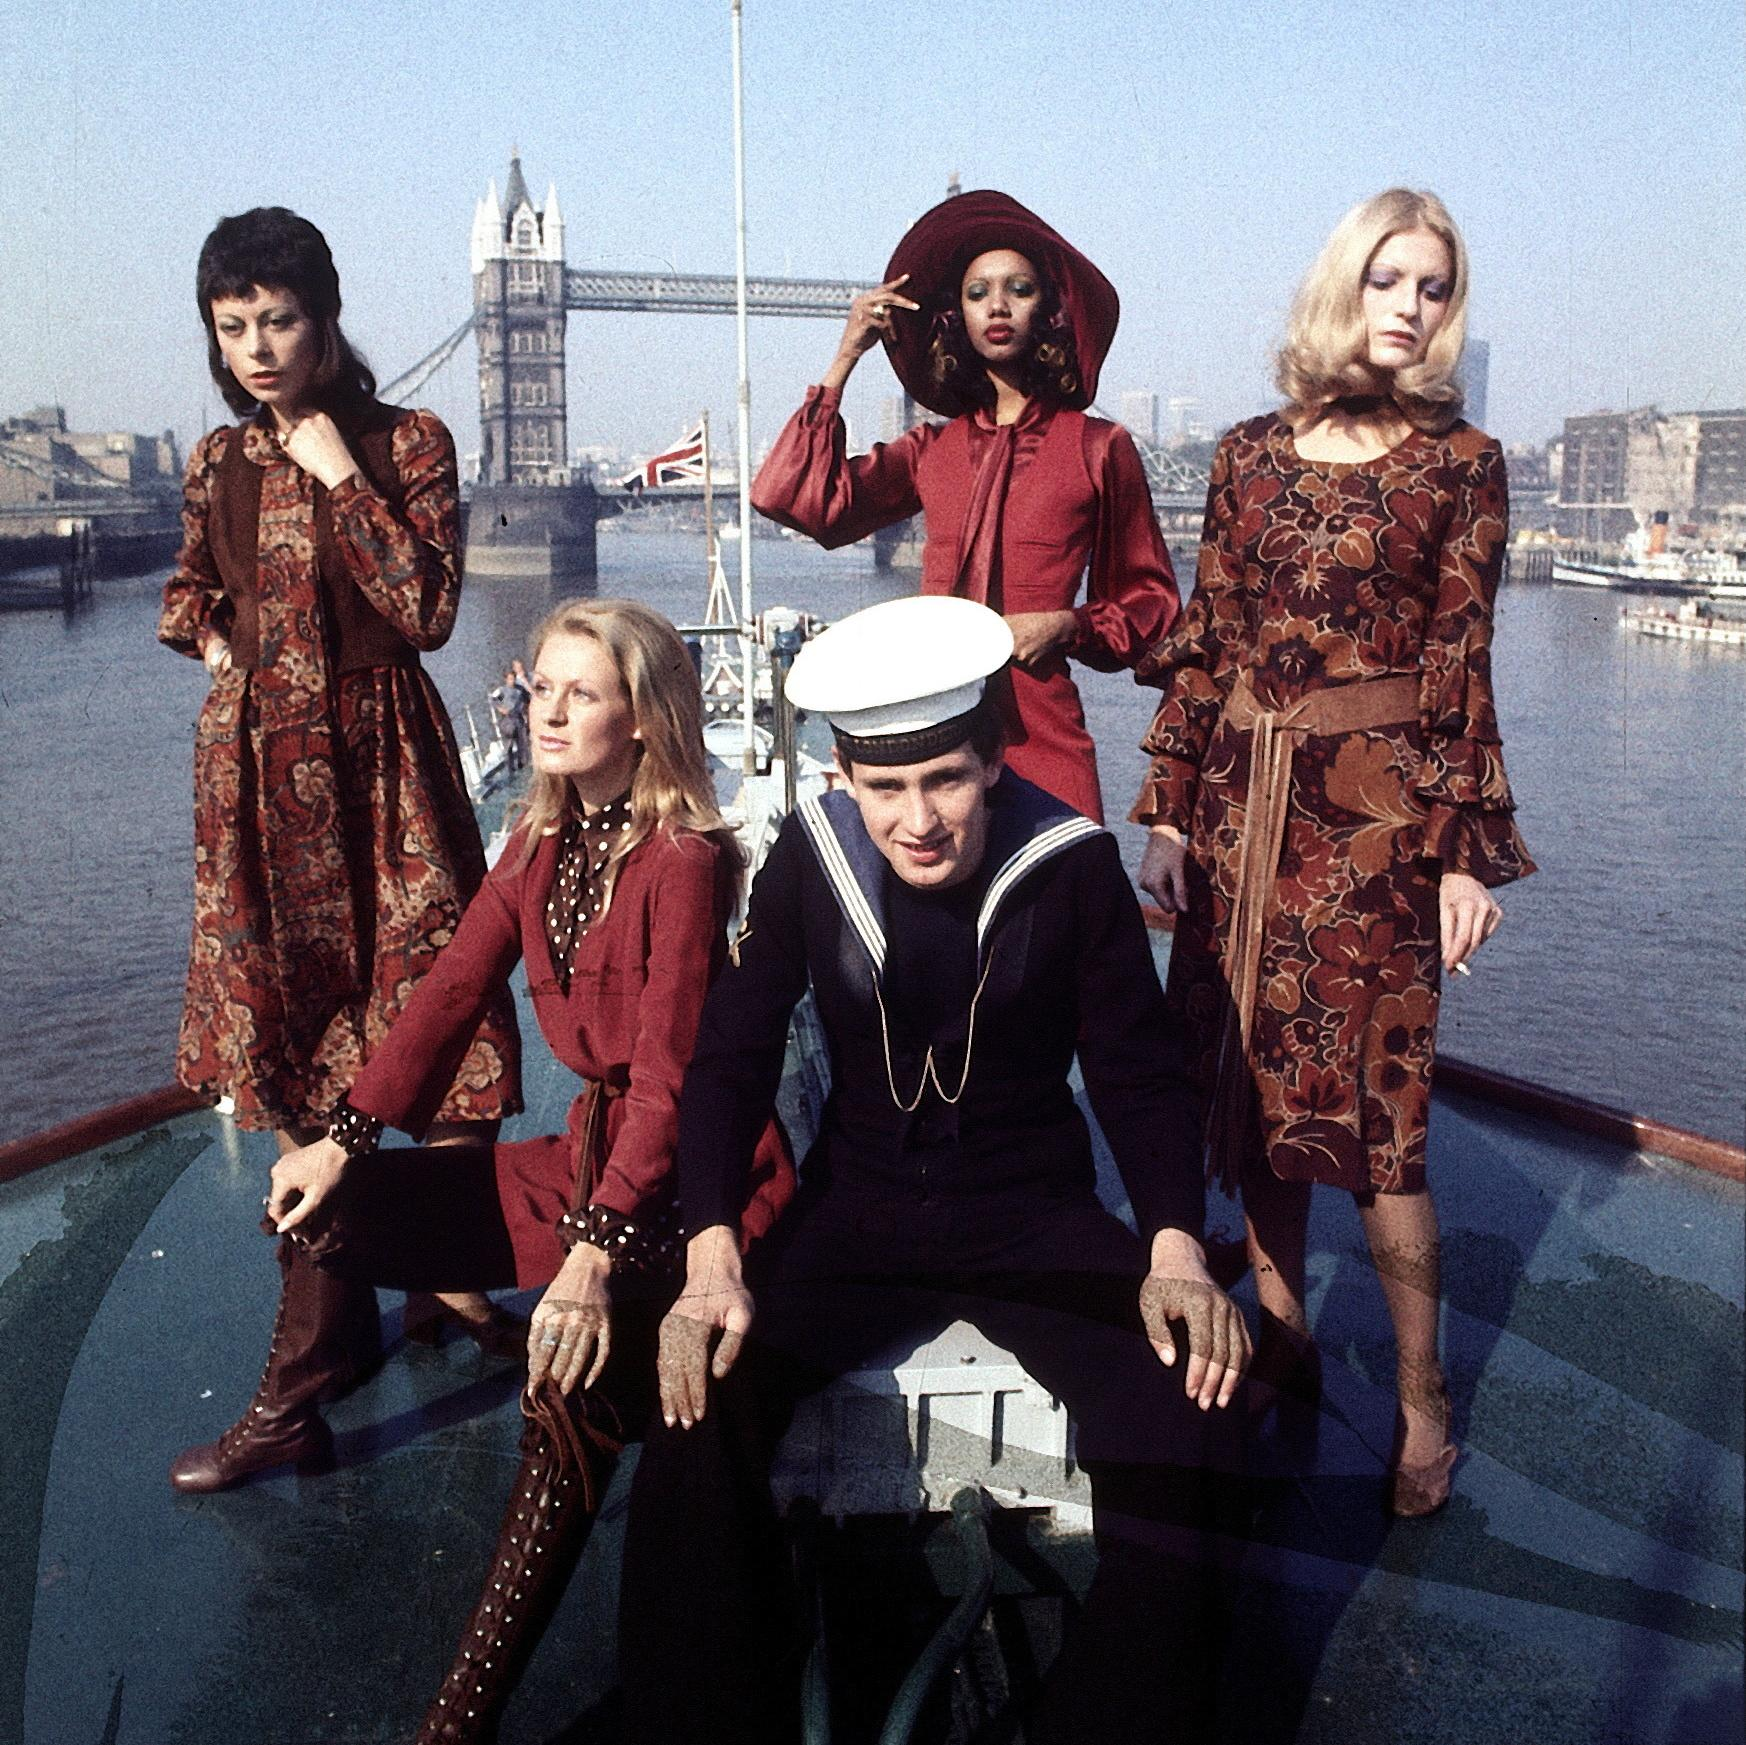 My Mary Quant gem: women on fashion that stood the test of time